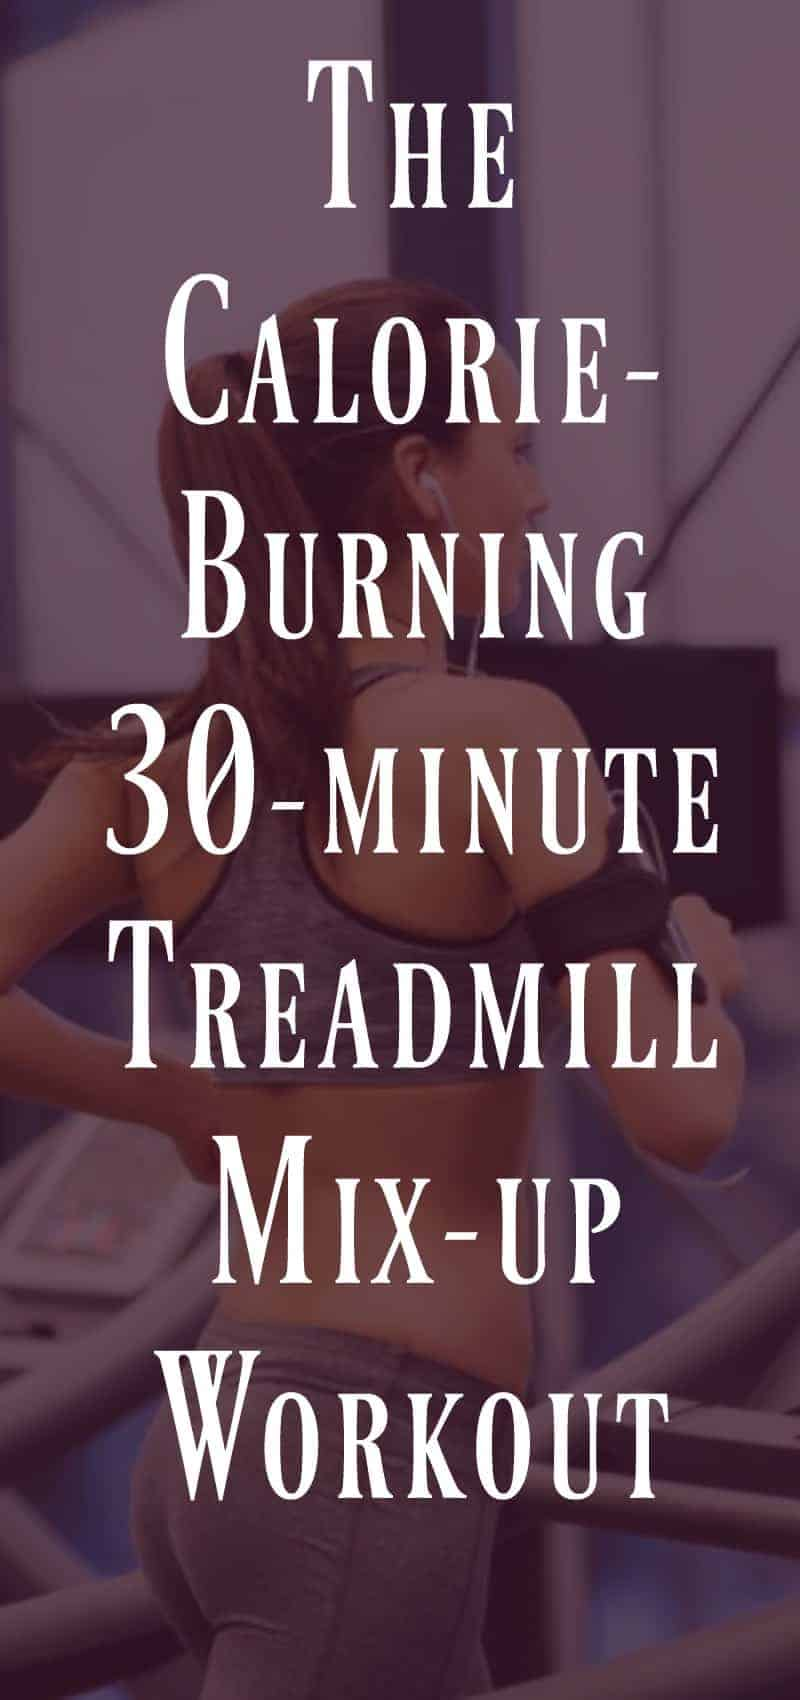 The Calorie-Burning 30-minute treadmill mix-up workout